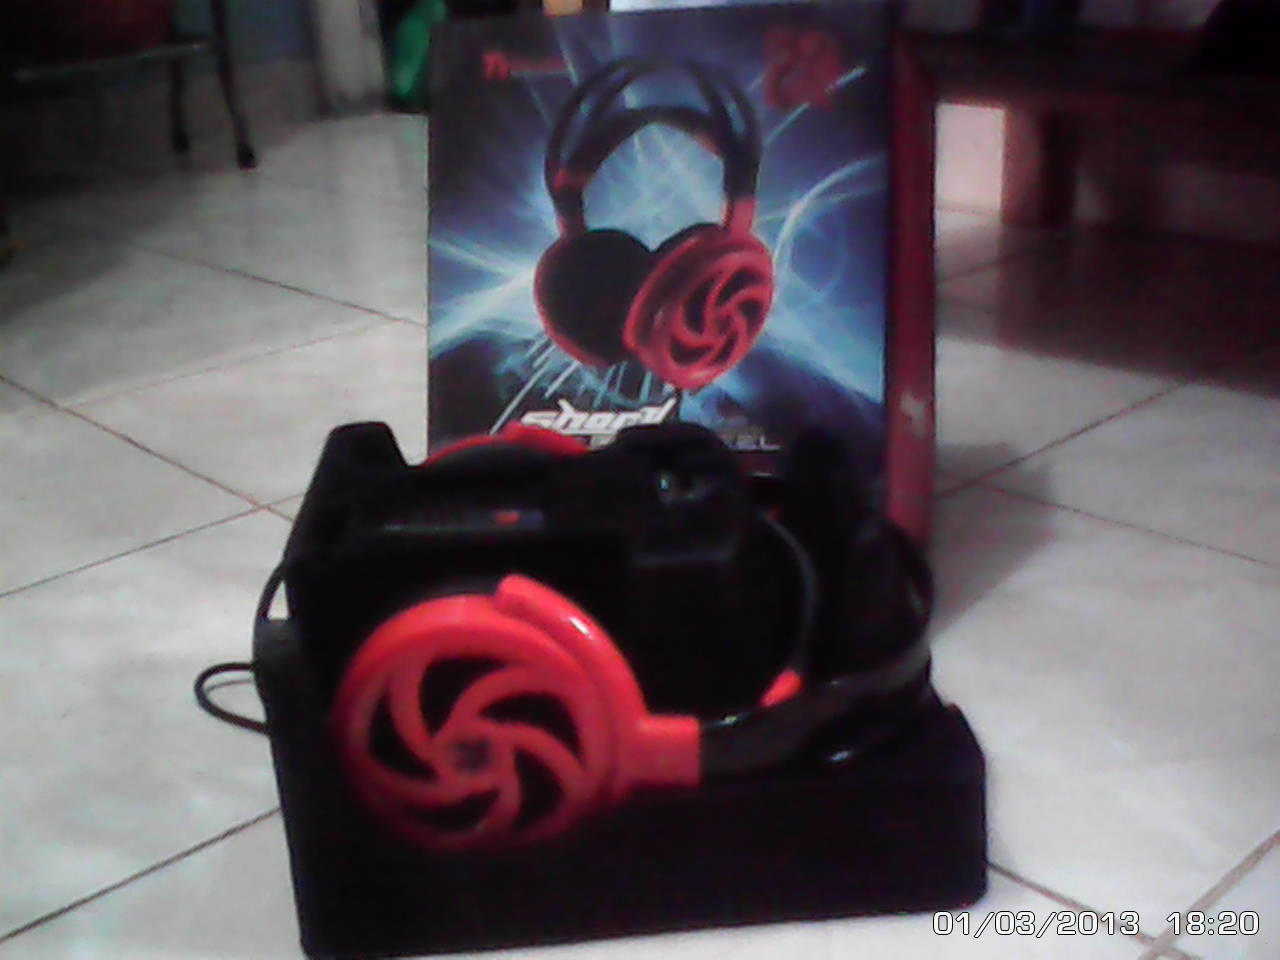 Gaming headset Ttesports shock spin hd 7.1